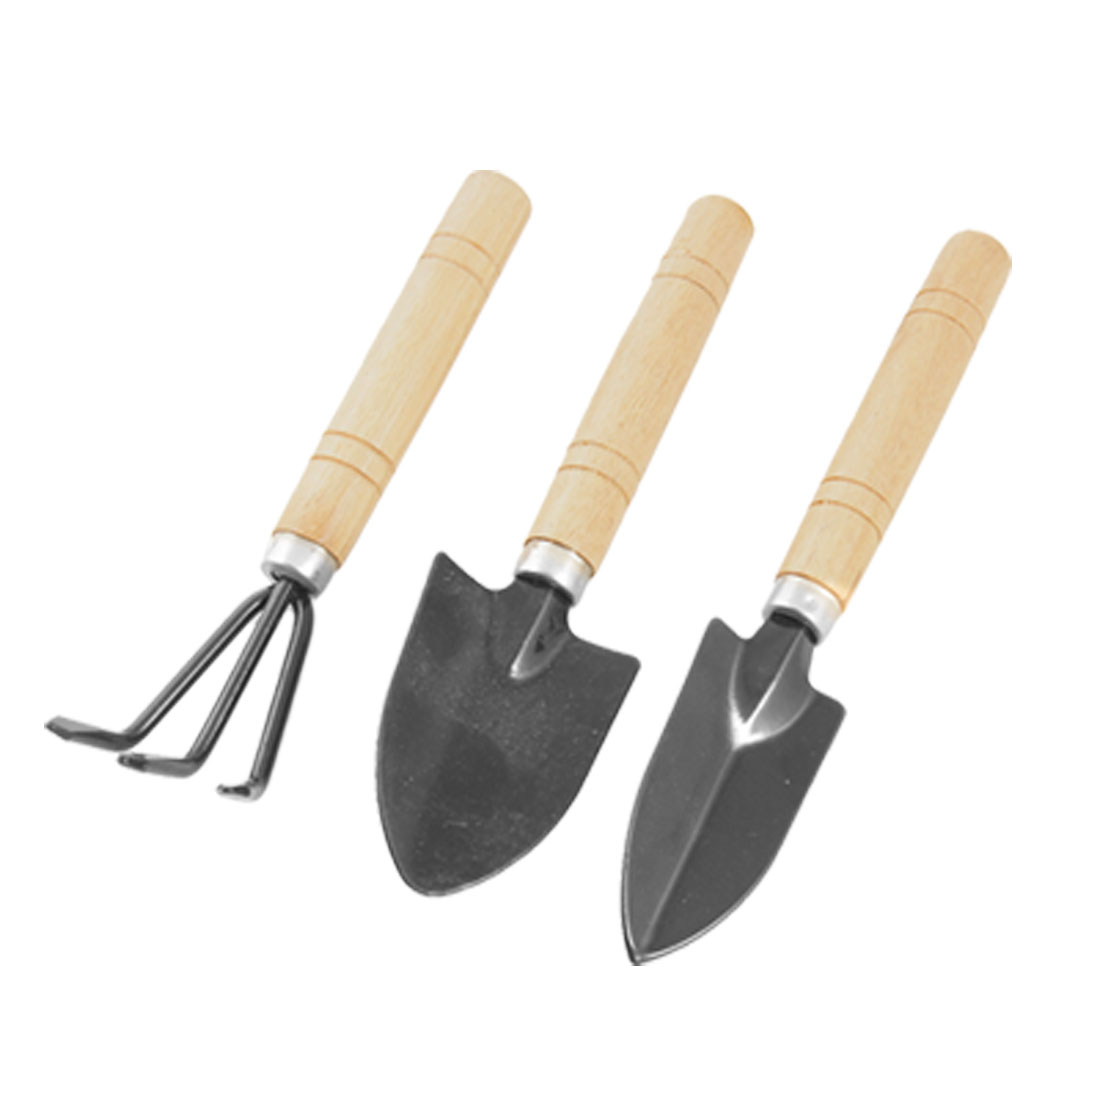 Home Wooden Handle Metal Rake Shovel Digging Trowel Garden Tools Set